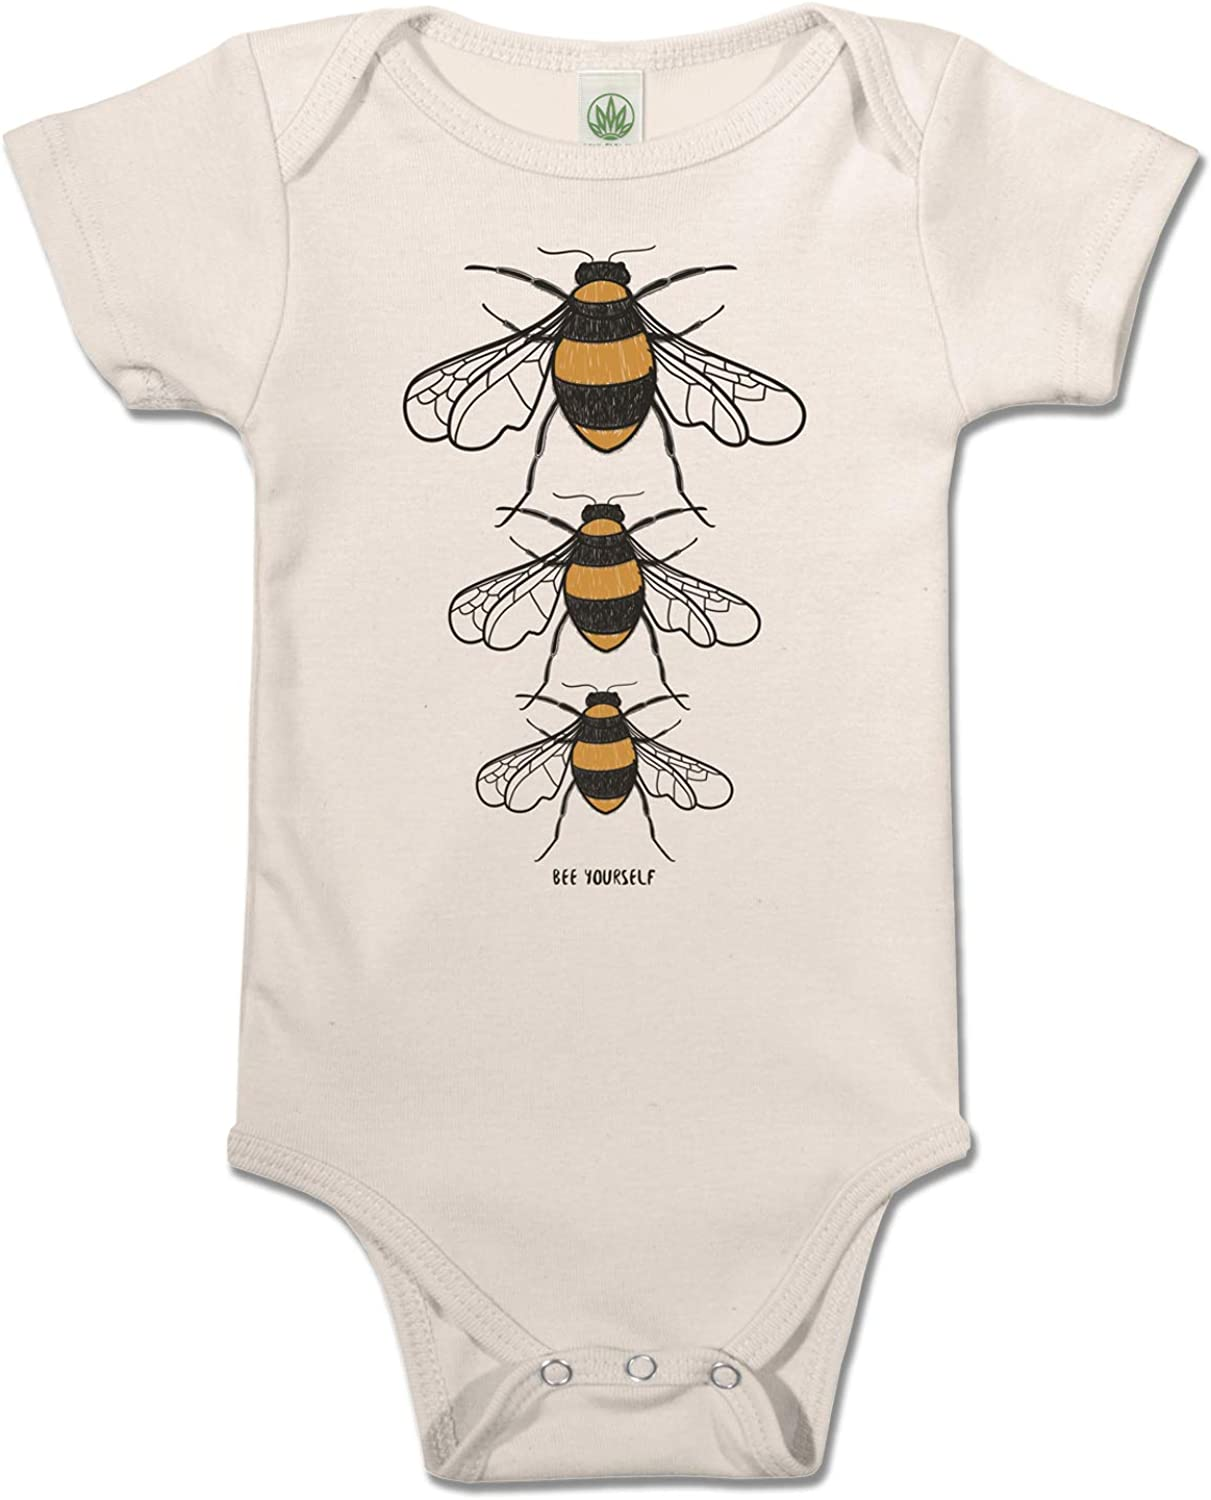 Soul Dealing full price reduction Flower Bee Yourself Organic Baby Ranking integrated 1st place Cotton Onesie Off-White U